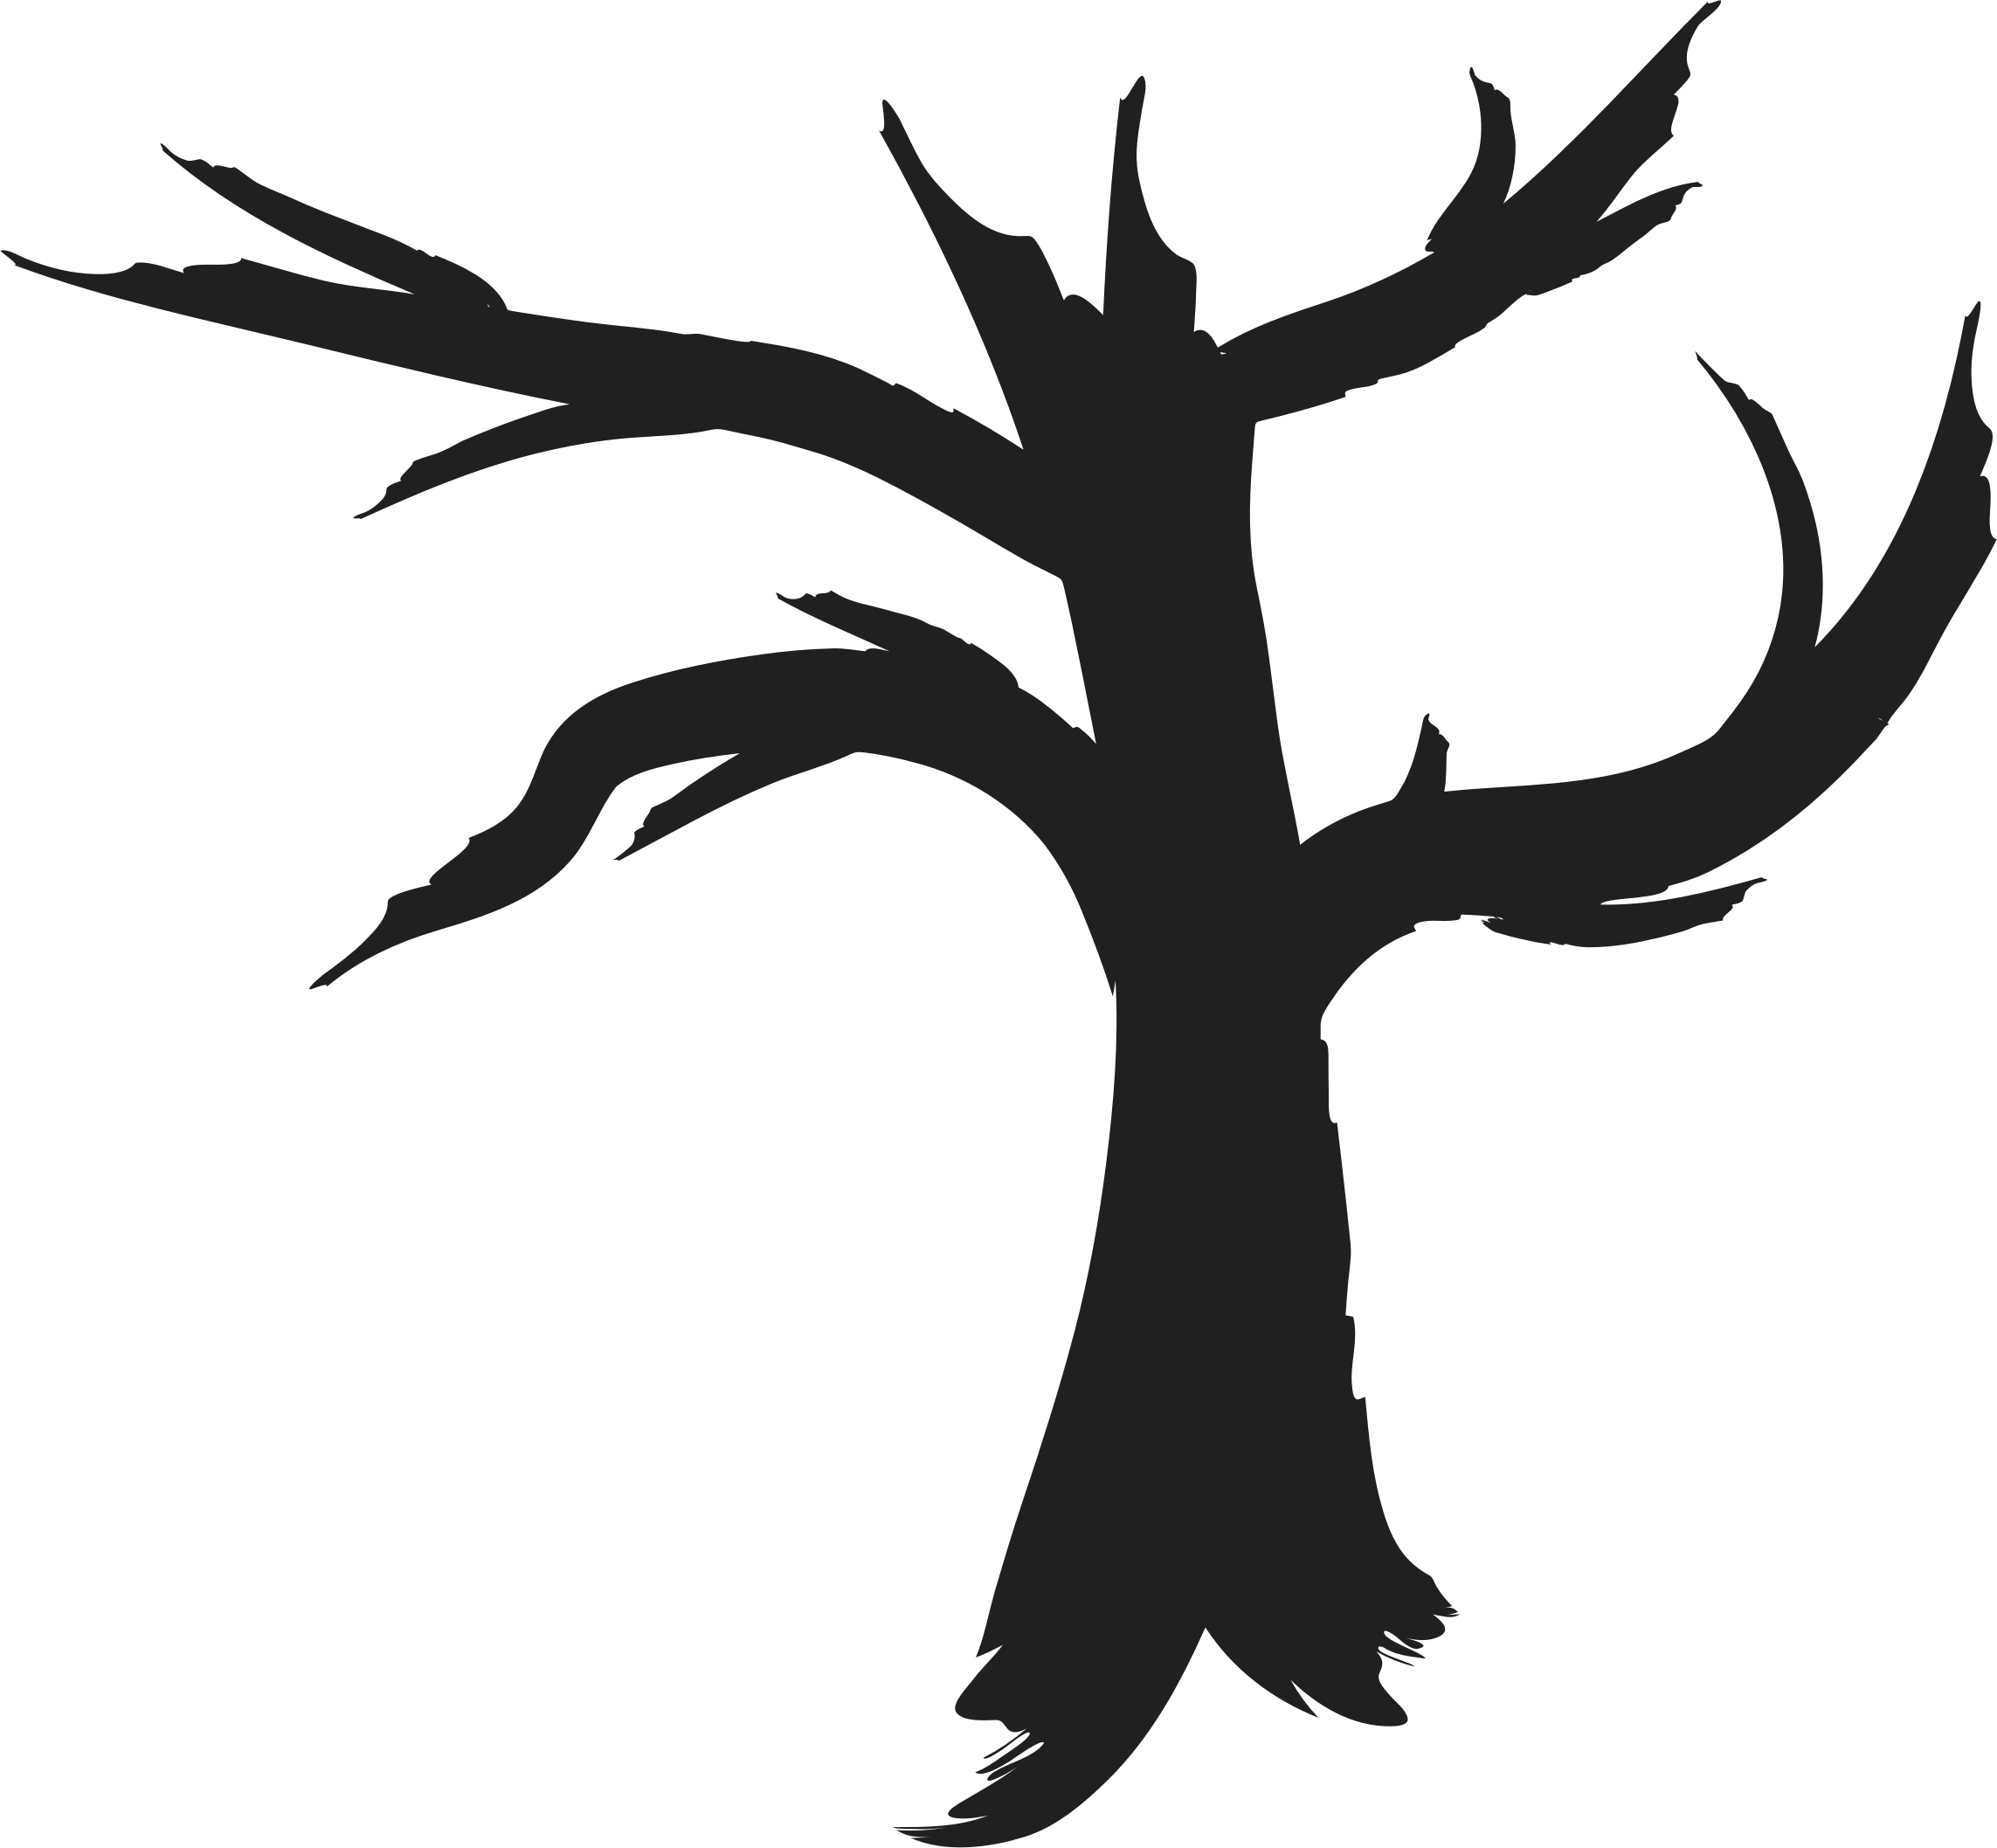 2286x2115 Dead Tree Silhouette Icons Png